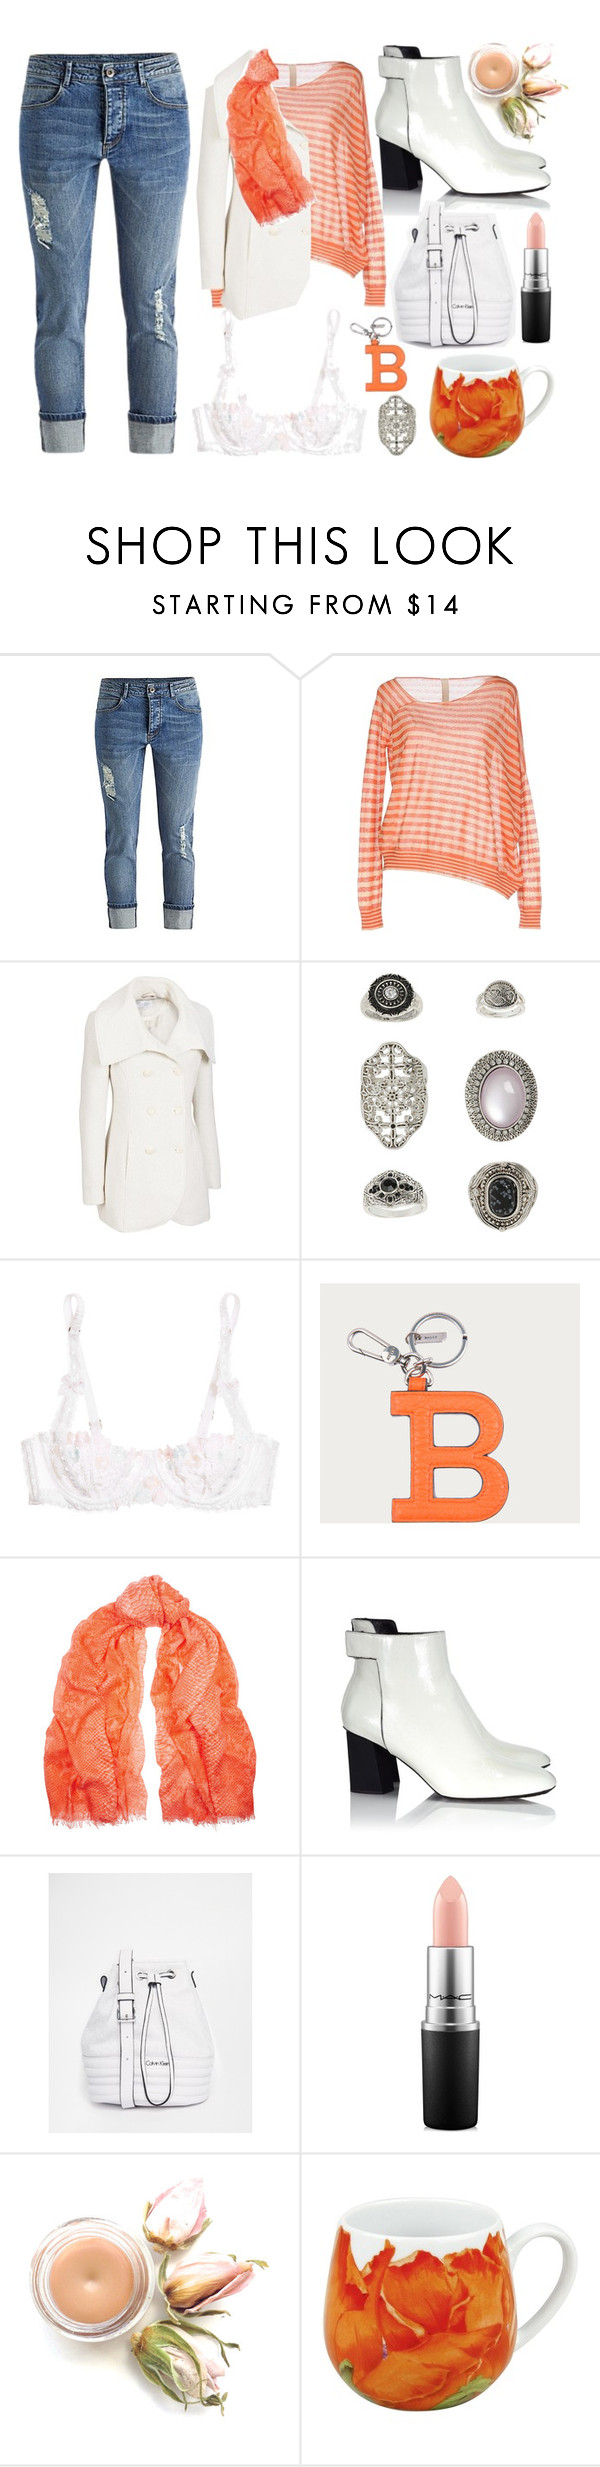 """Maeve"" by goingdigi ❤ liked on Polyvore featuring Pinko Tag, Jessica Simpson, Topshop, Agent Provocateur, Bally, STELLA McCARTNEY, Proenza Schouler, Calvin Klein, MAC Cosmetics and Könitz"